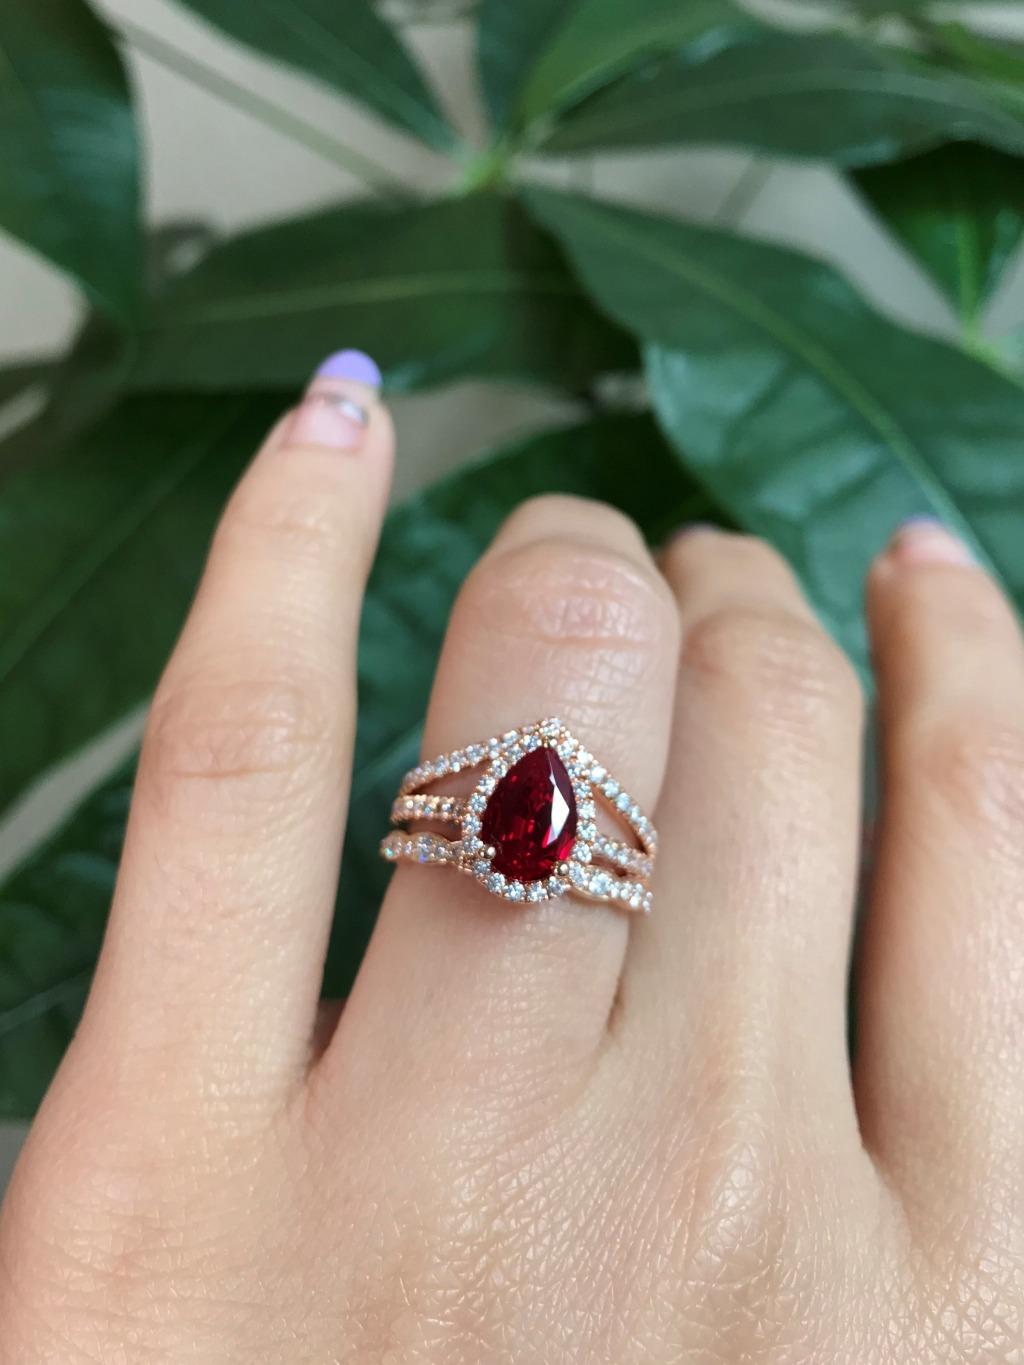 Isn't she dreamy? 😍 She is our Pear Ruby Luna Halo Bridal Set in Pave Diamond band stacked with Scalloped Diamond band with Chevron